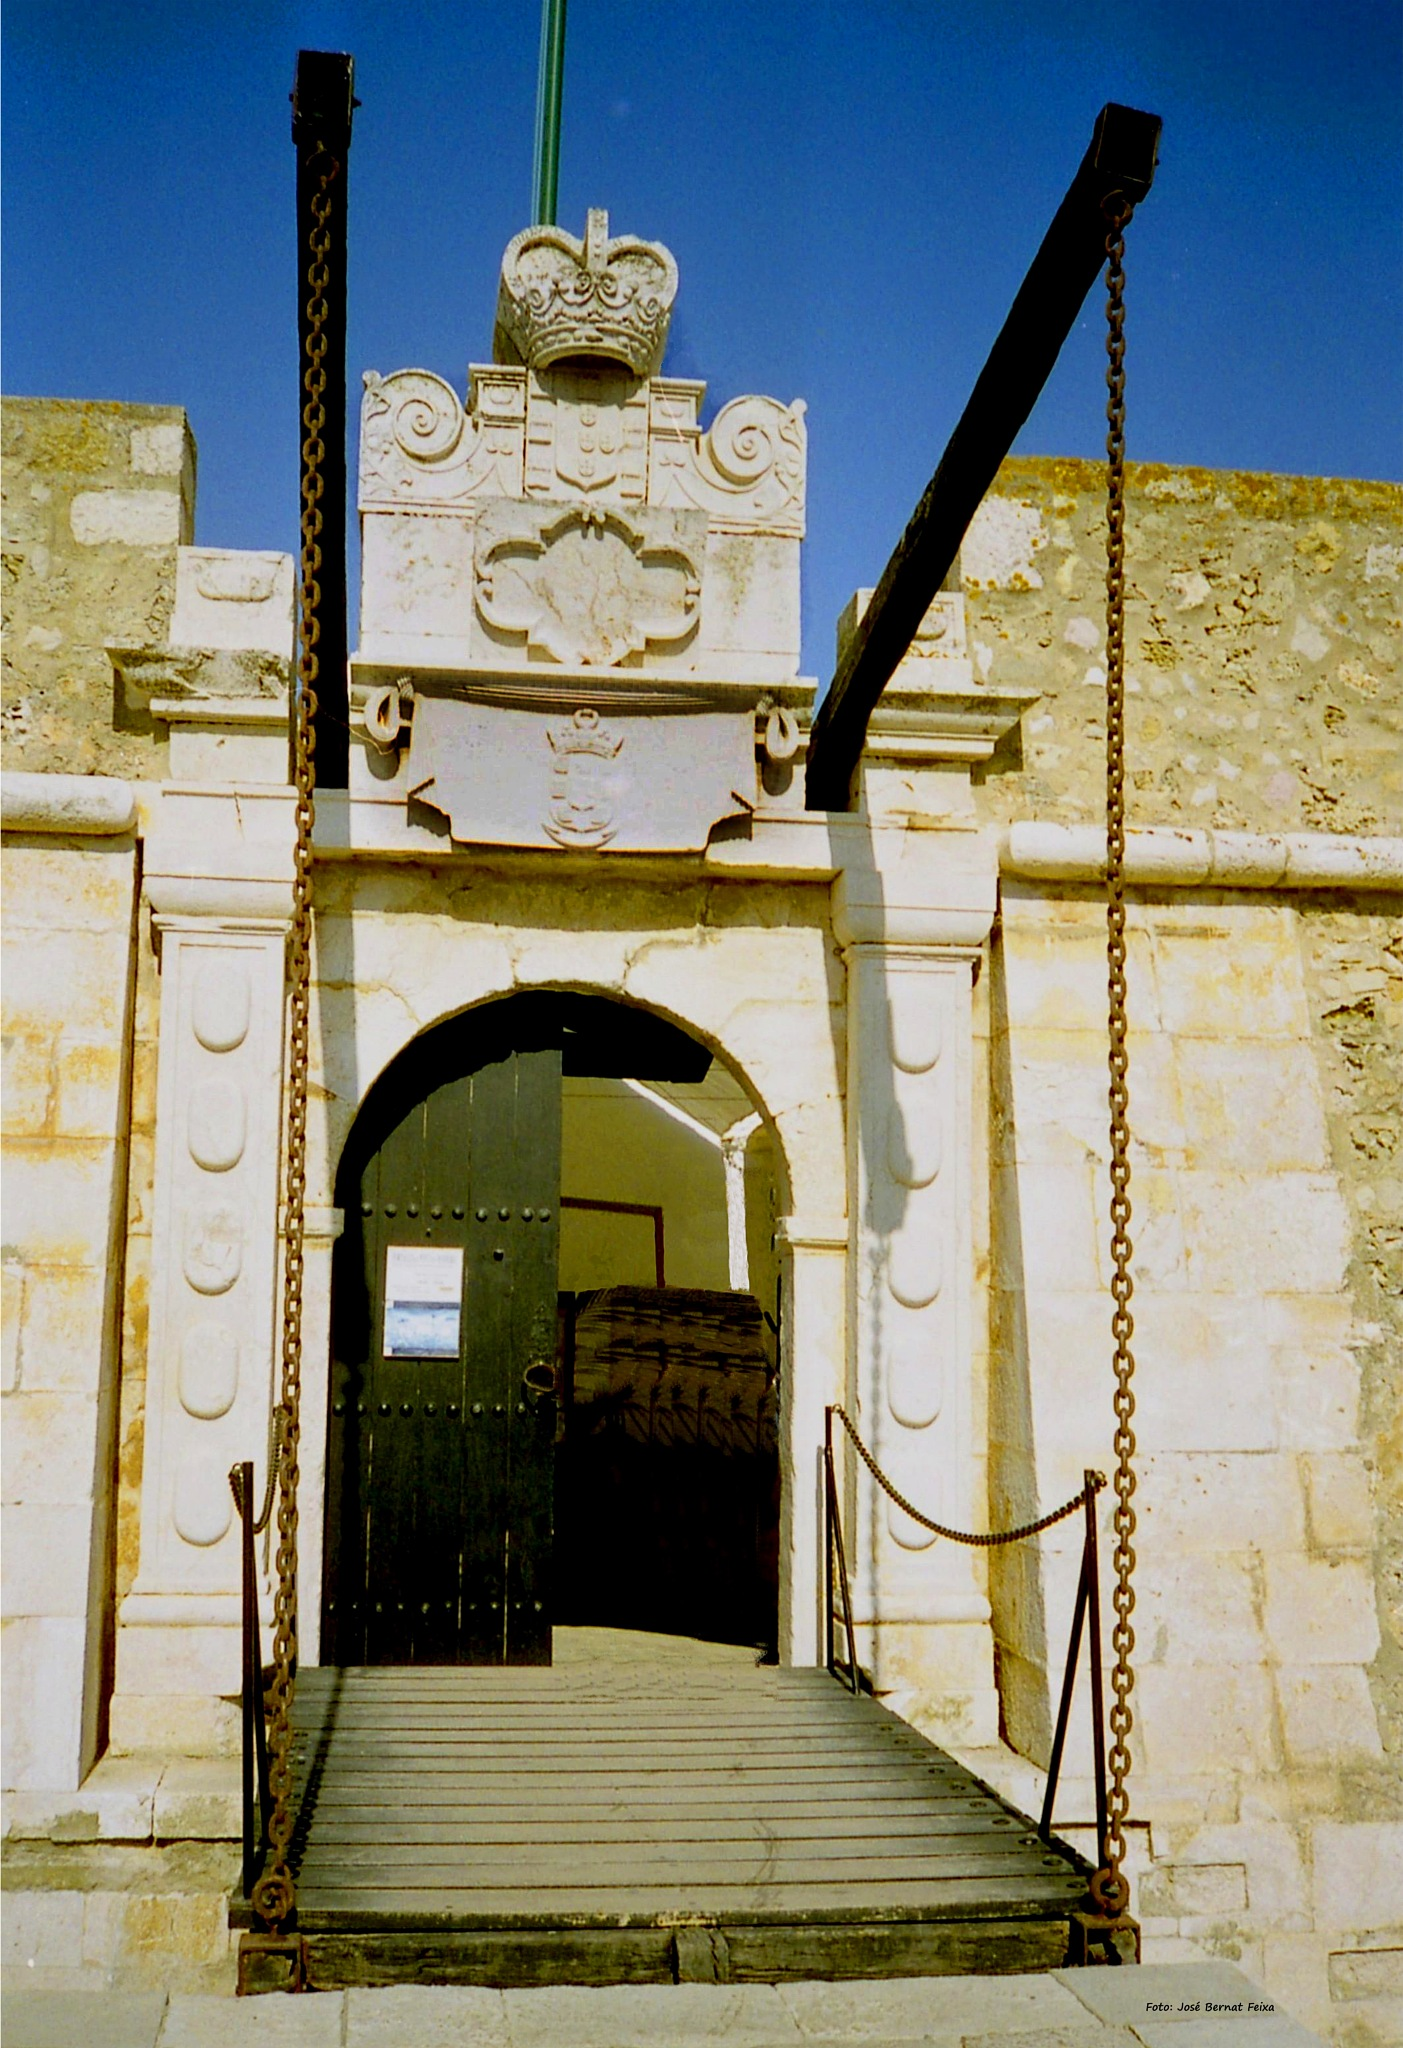 PUENTE LEVADIZO Y MURALLA ; OPHAALBRUG EN MUUR ; DRAWBRIDGE AND WALL by José Bernat Feixa